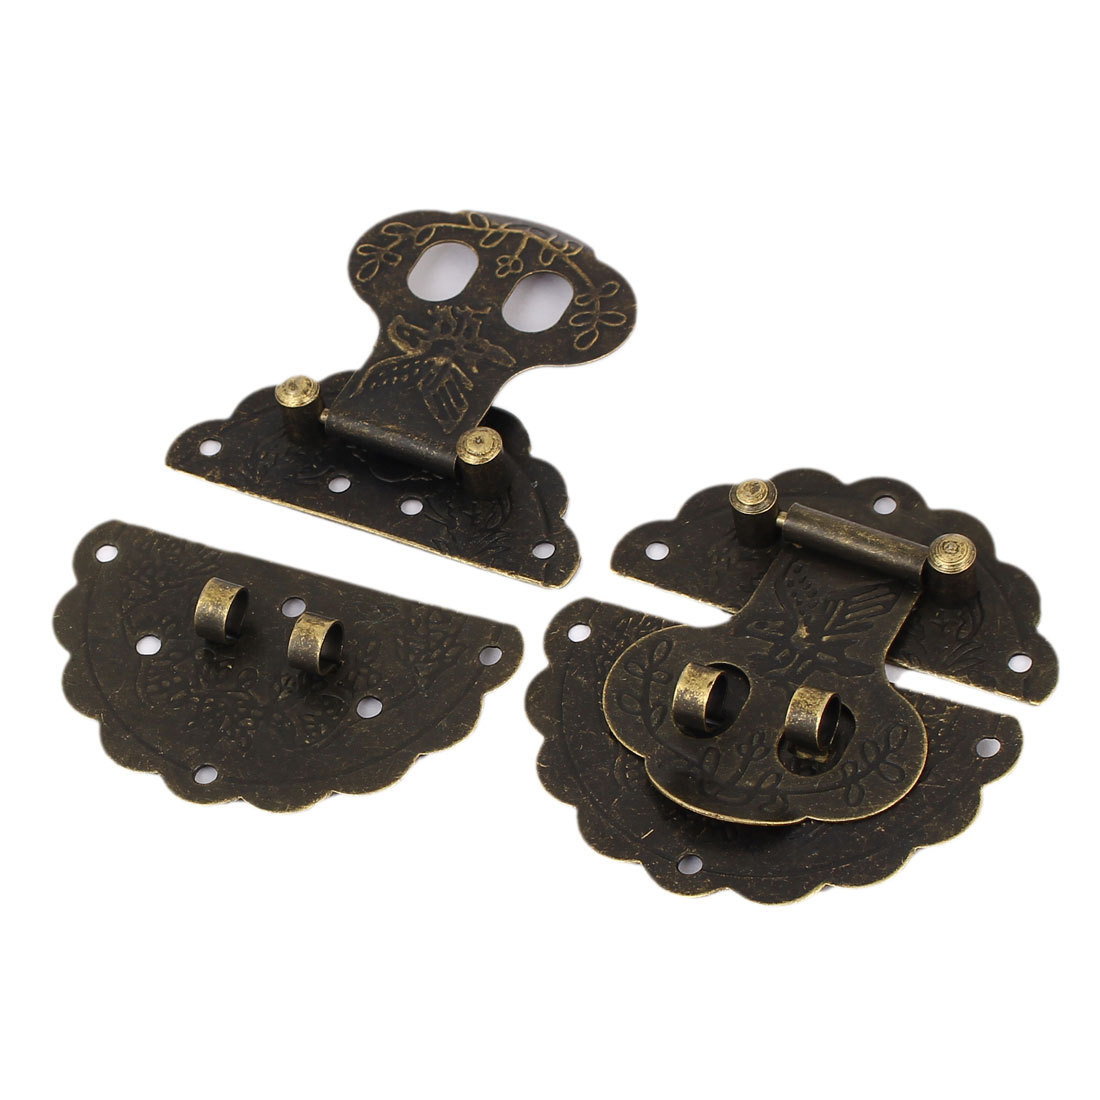 60mm Dia Toggle Latch Catch Trunk Lock Bronze Tone 2PCS for Chest Case Gift Box